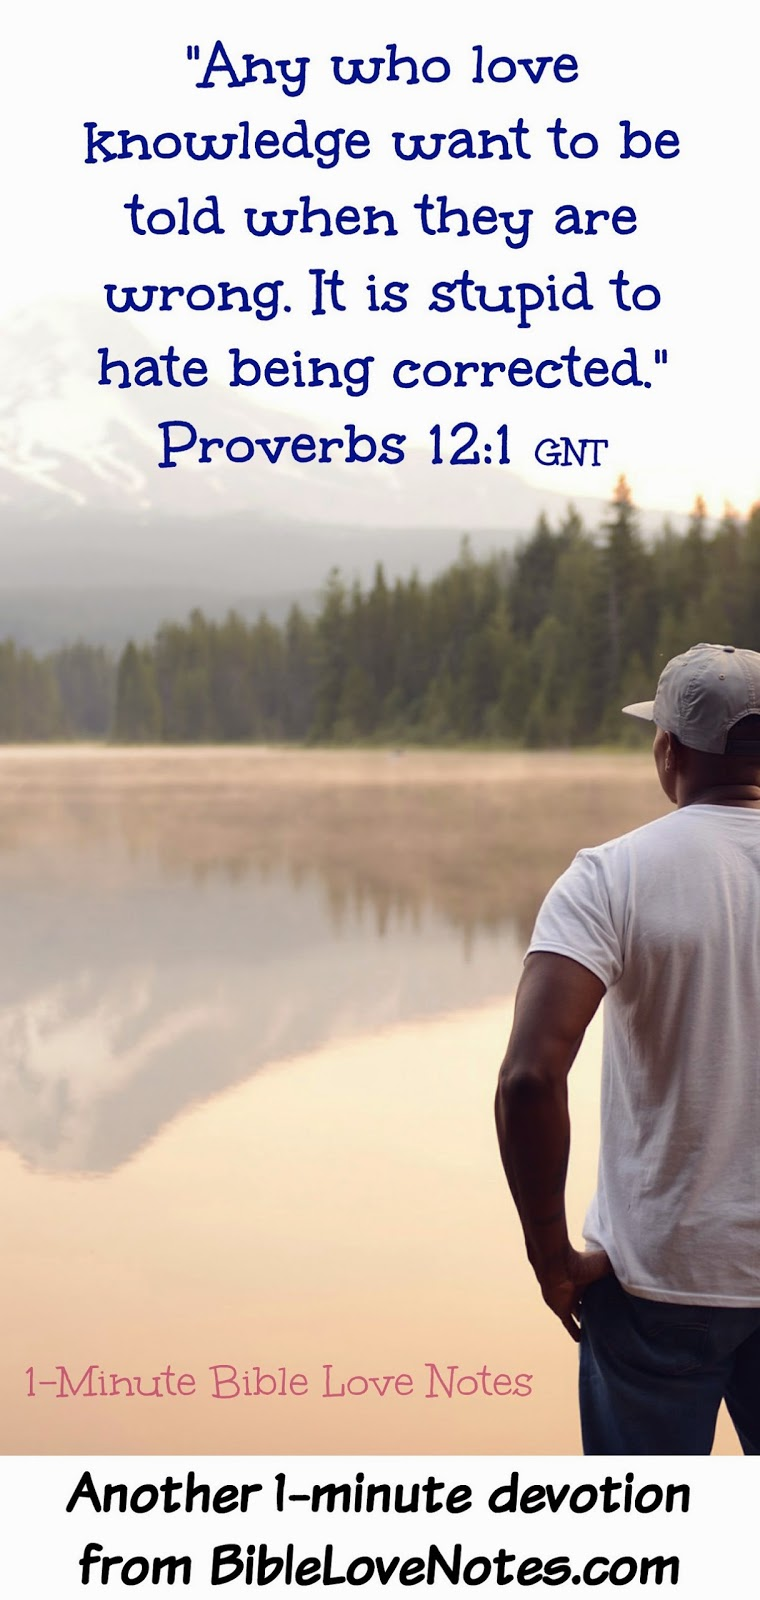 accepting correction, God rebukes and disciplines those He loves